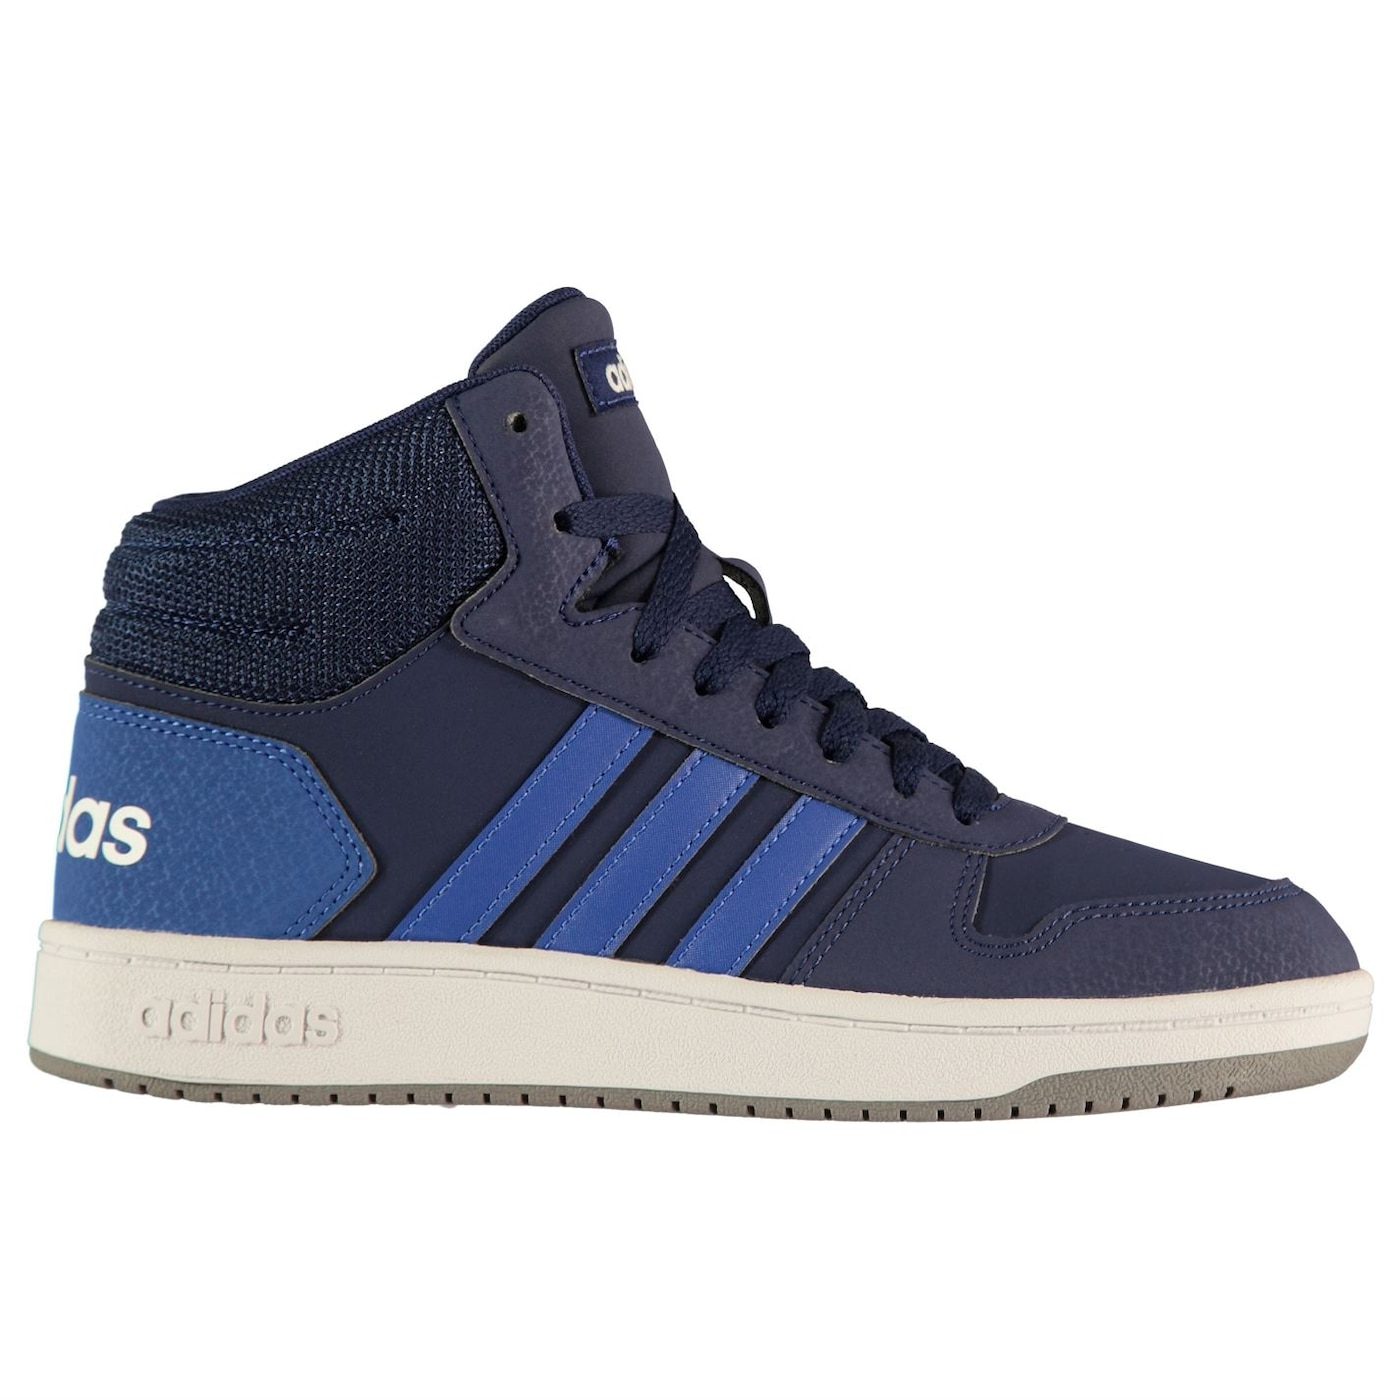 Adidas Hoops Mid 2.0 High Top Trainers Junior Boys